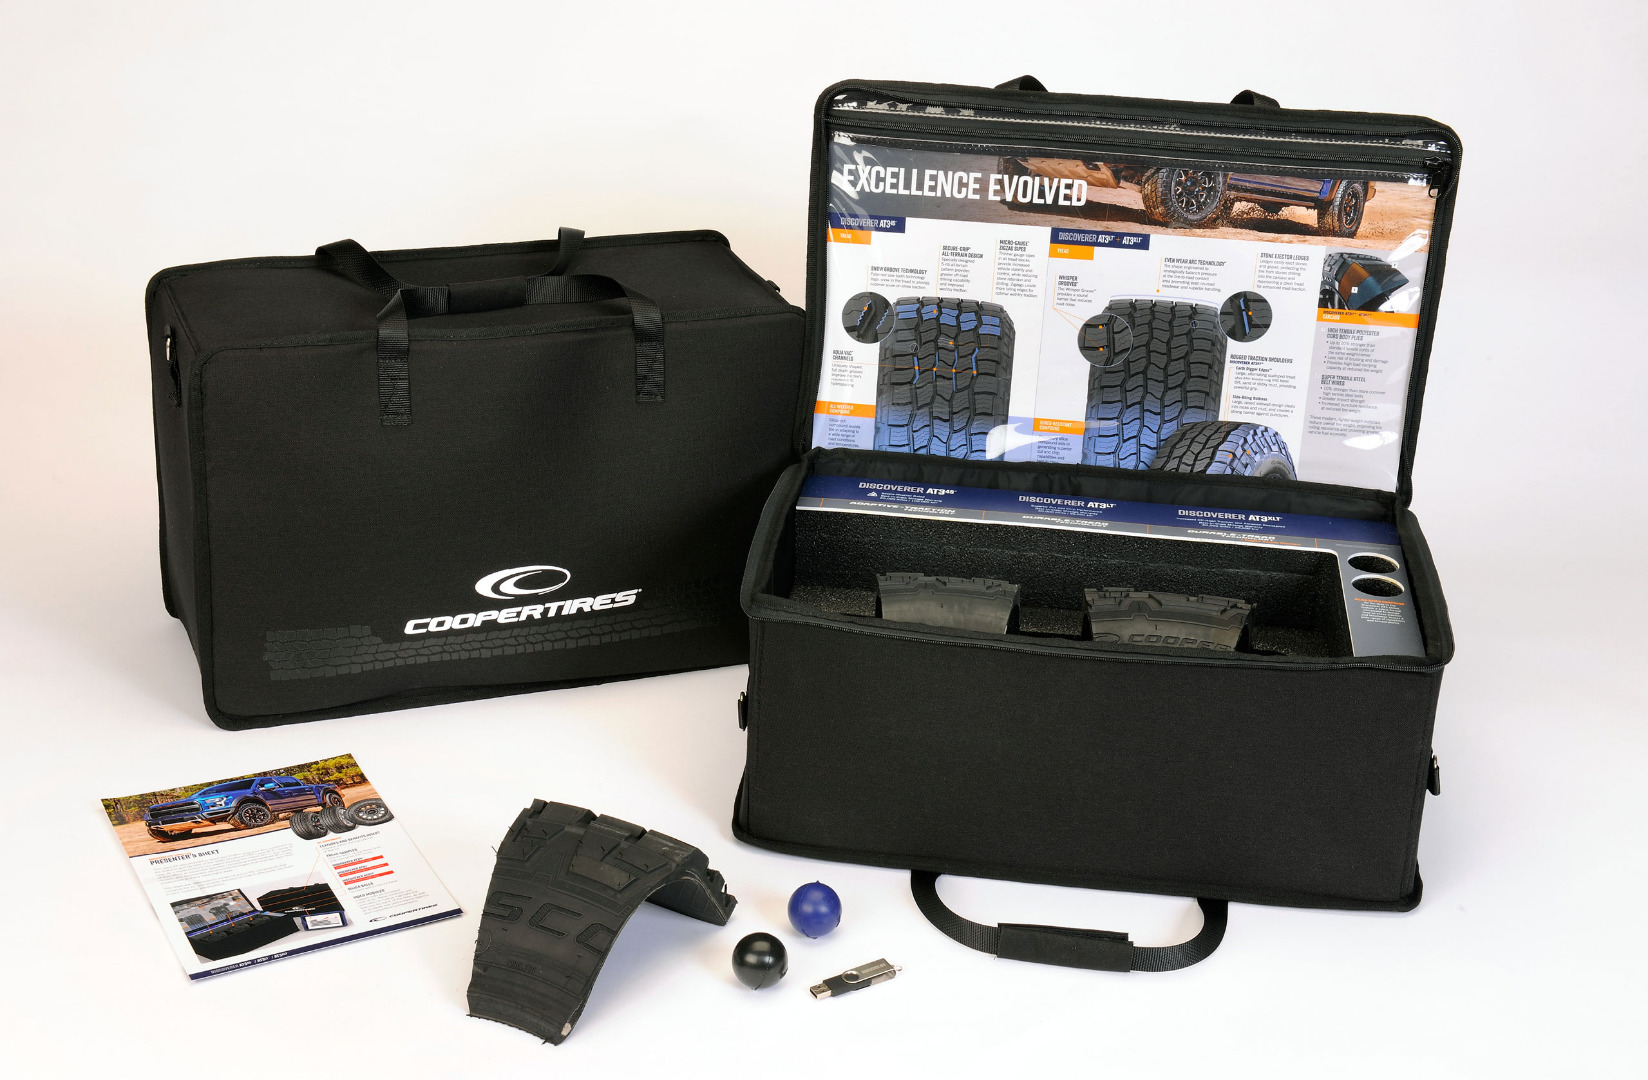 Kit created for Cooper Tire's sales team to sell the new Discoverer AT3 line of tires.